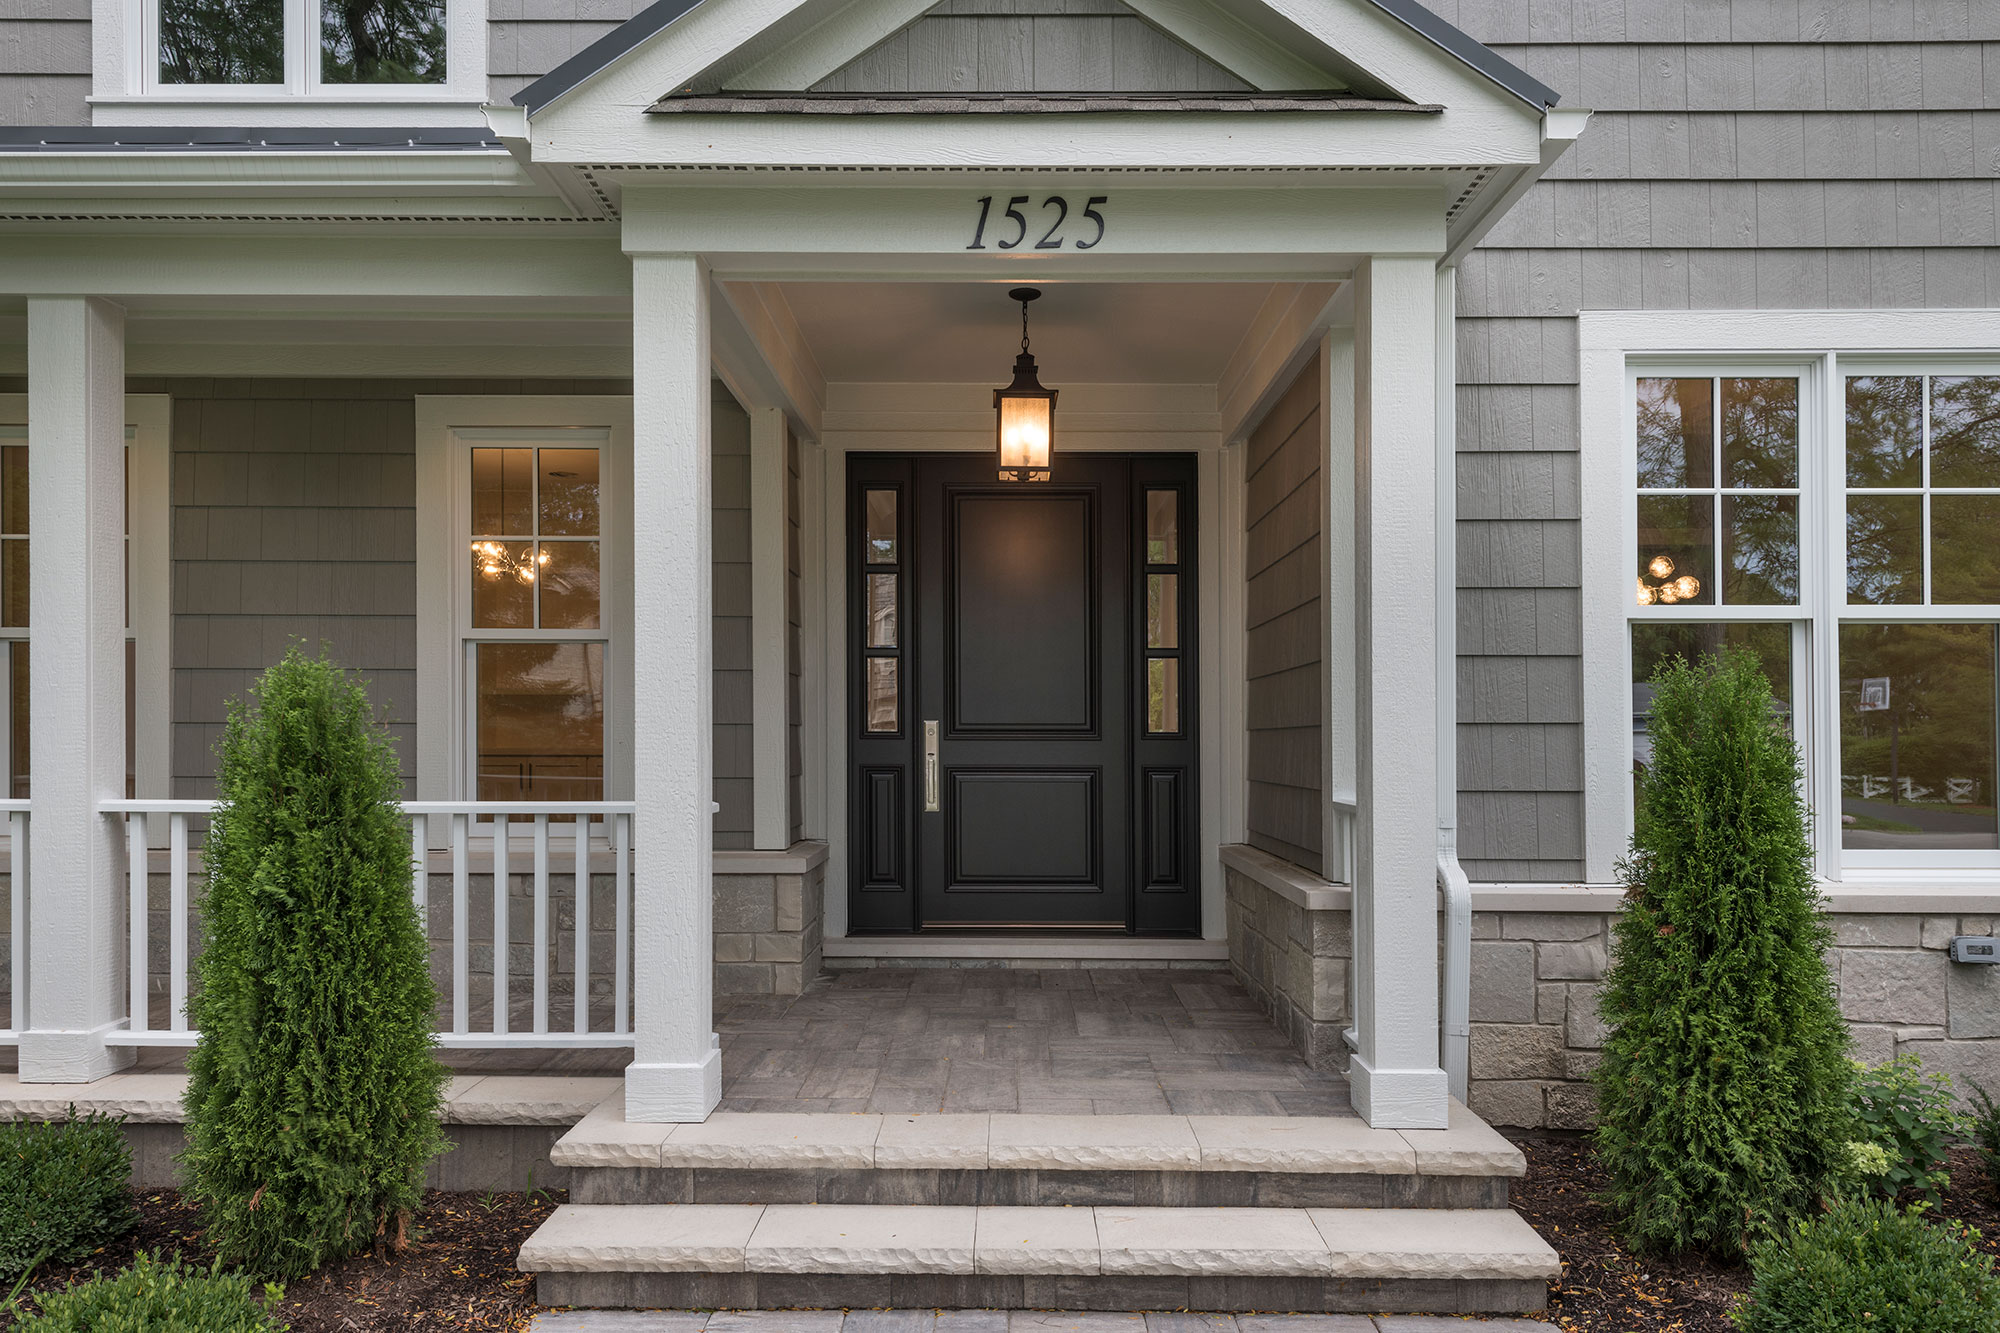 Wood Front Entry Doors in-Stock | furniture quality dark finish on classic front entry door DB-301PW 2SL - Glenview Doors - Custom Doors in Chicago